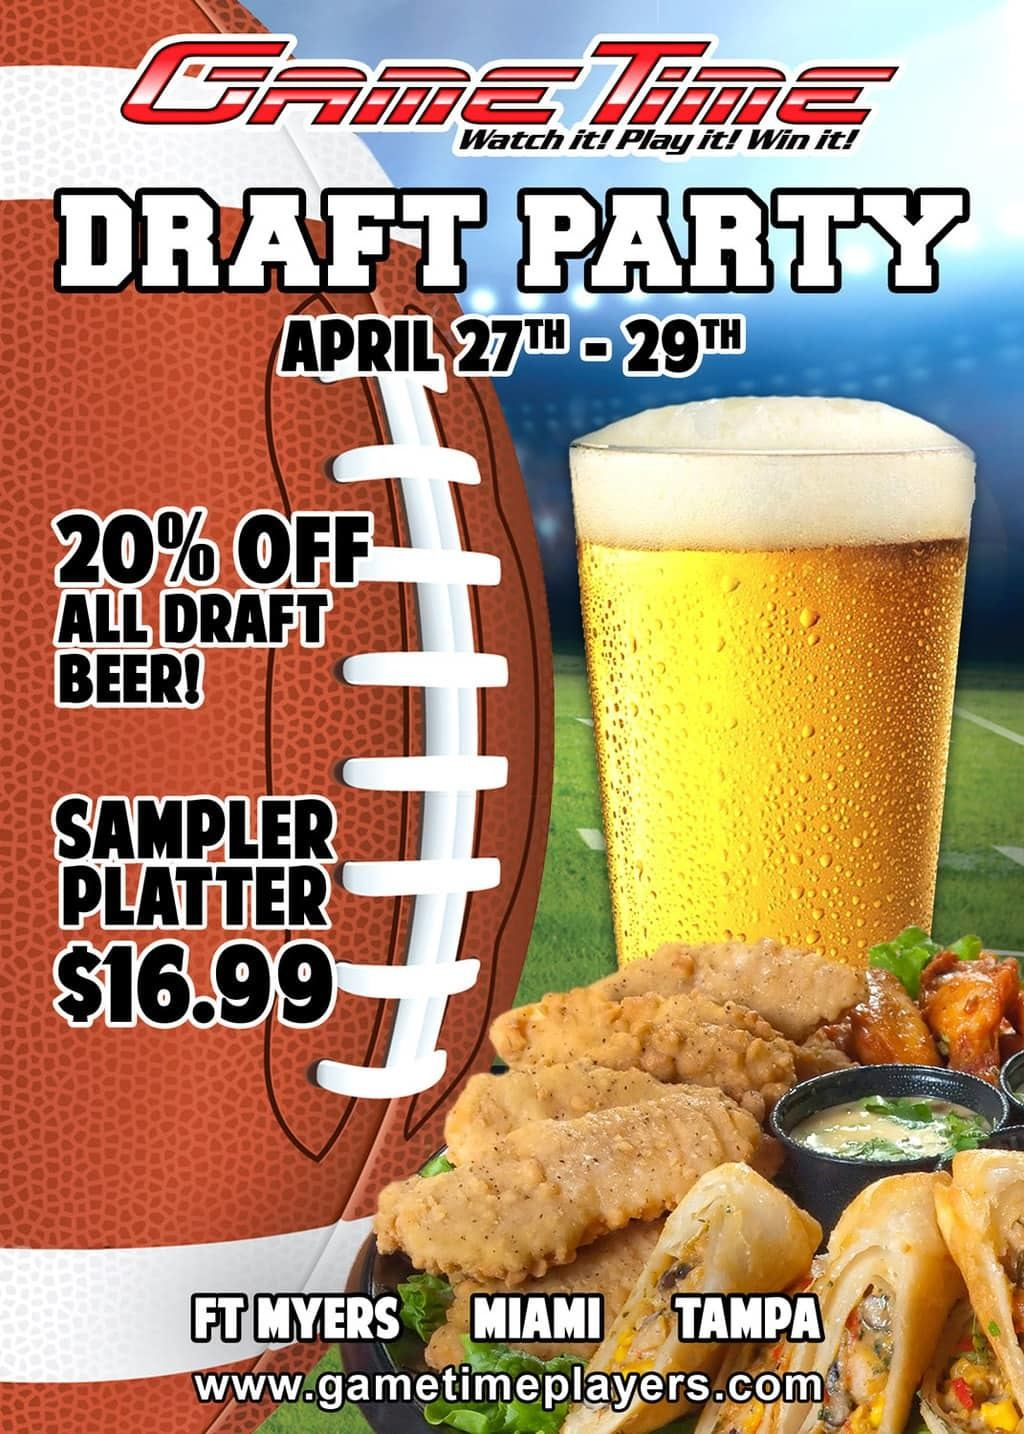 NFL-Draft-Draught-Party-at-GameTime-Sports-Bar-Miami-Tampa-Fort-Myers